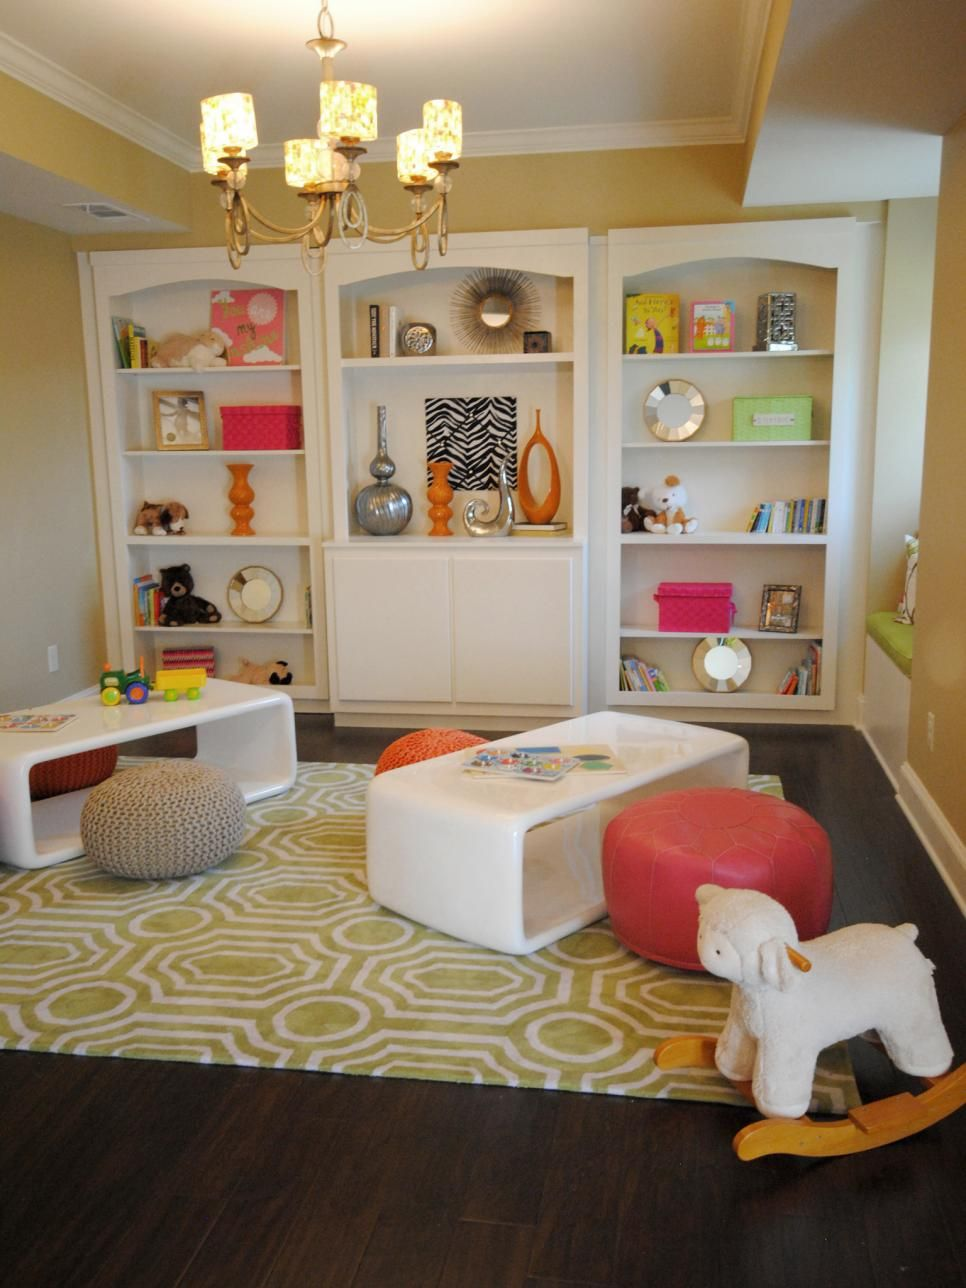 Eclectic Yellow Playroom With Built-in Bookshelves   Main Floor